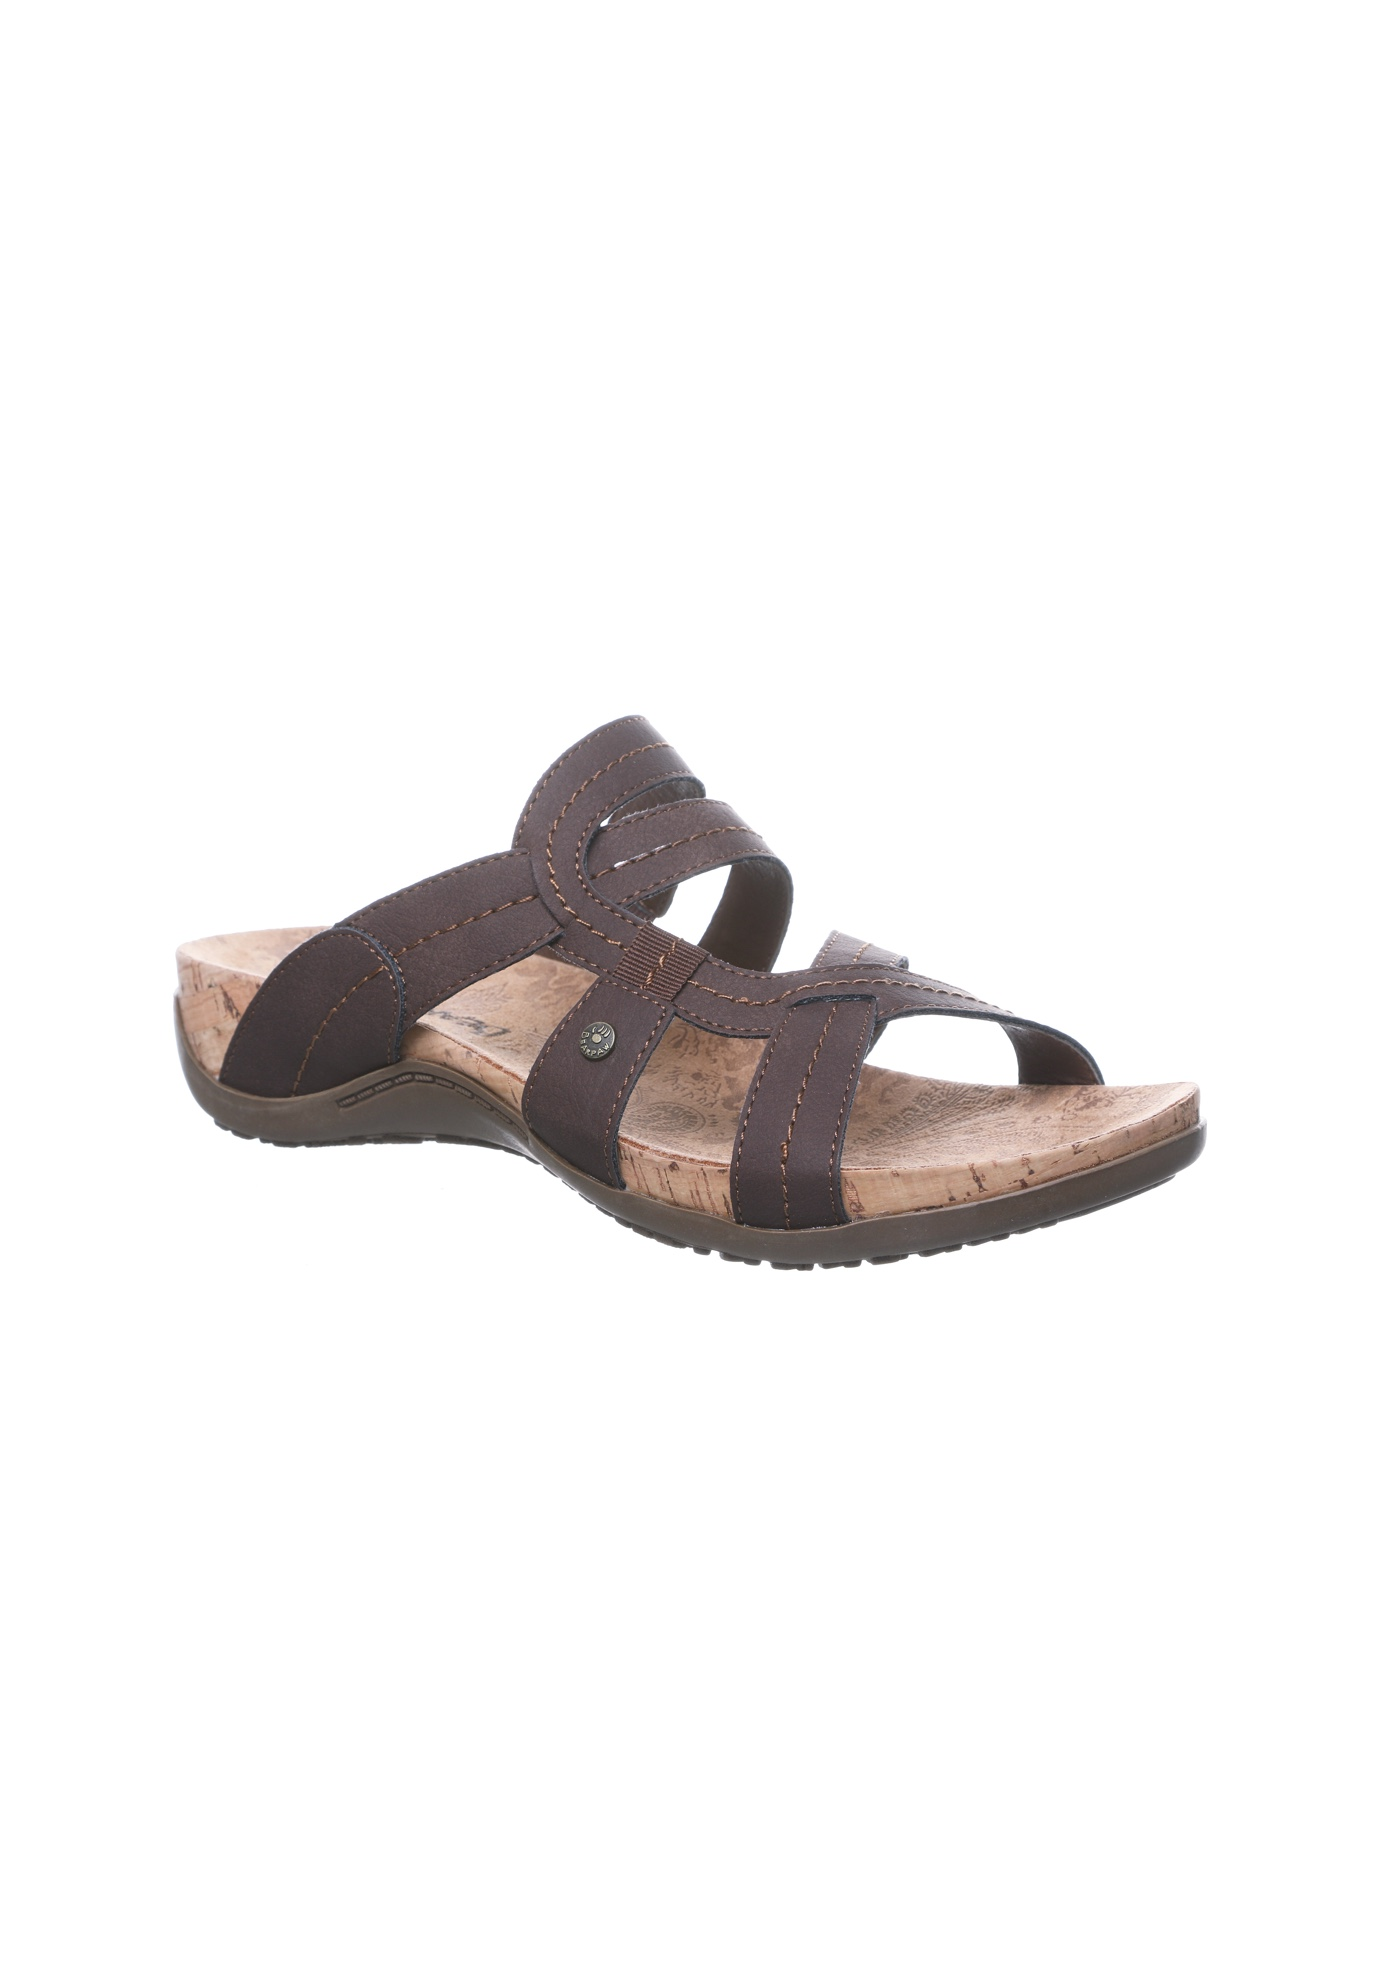 Kai Sandals by Bearpaw,